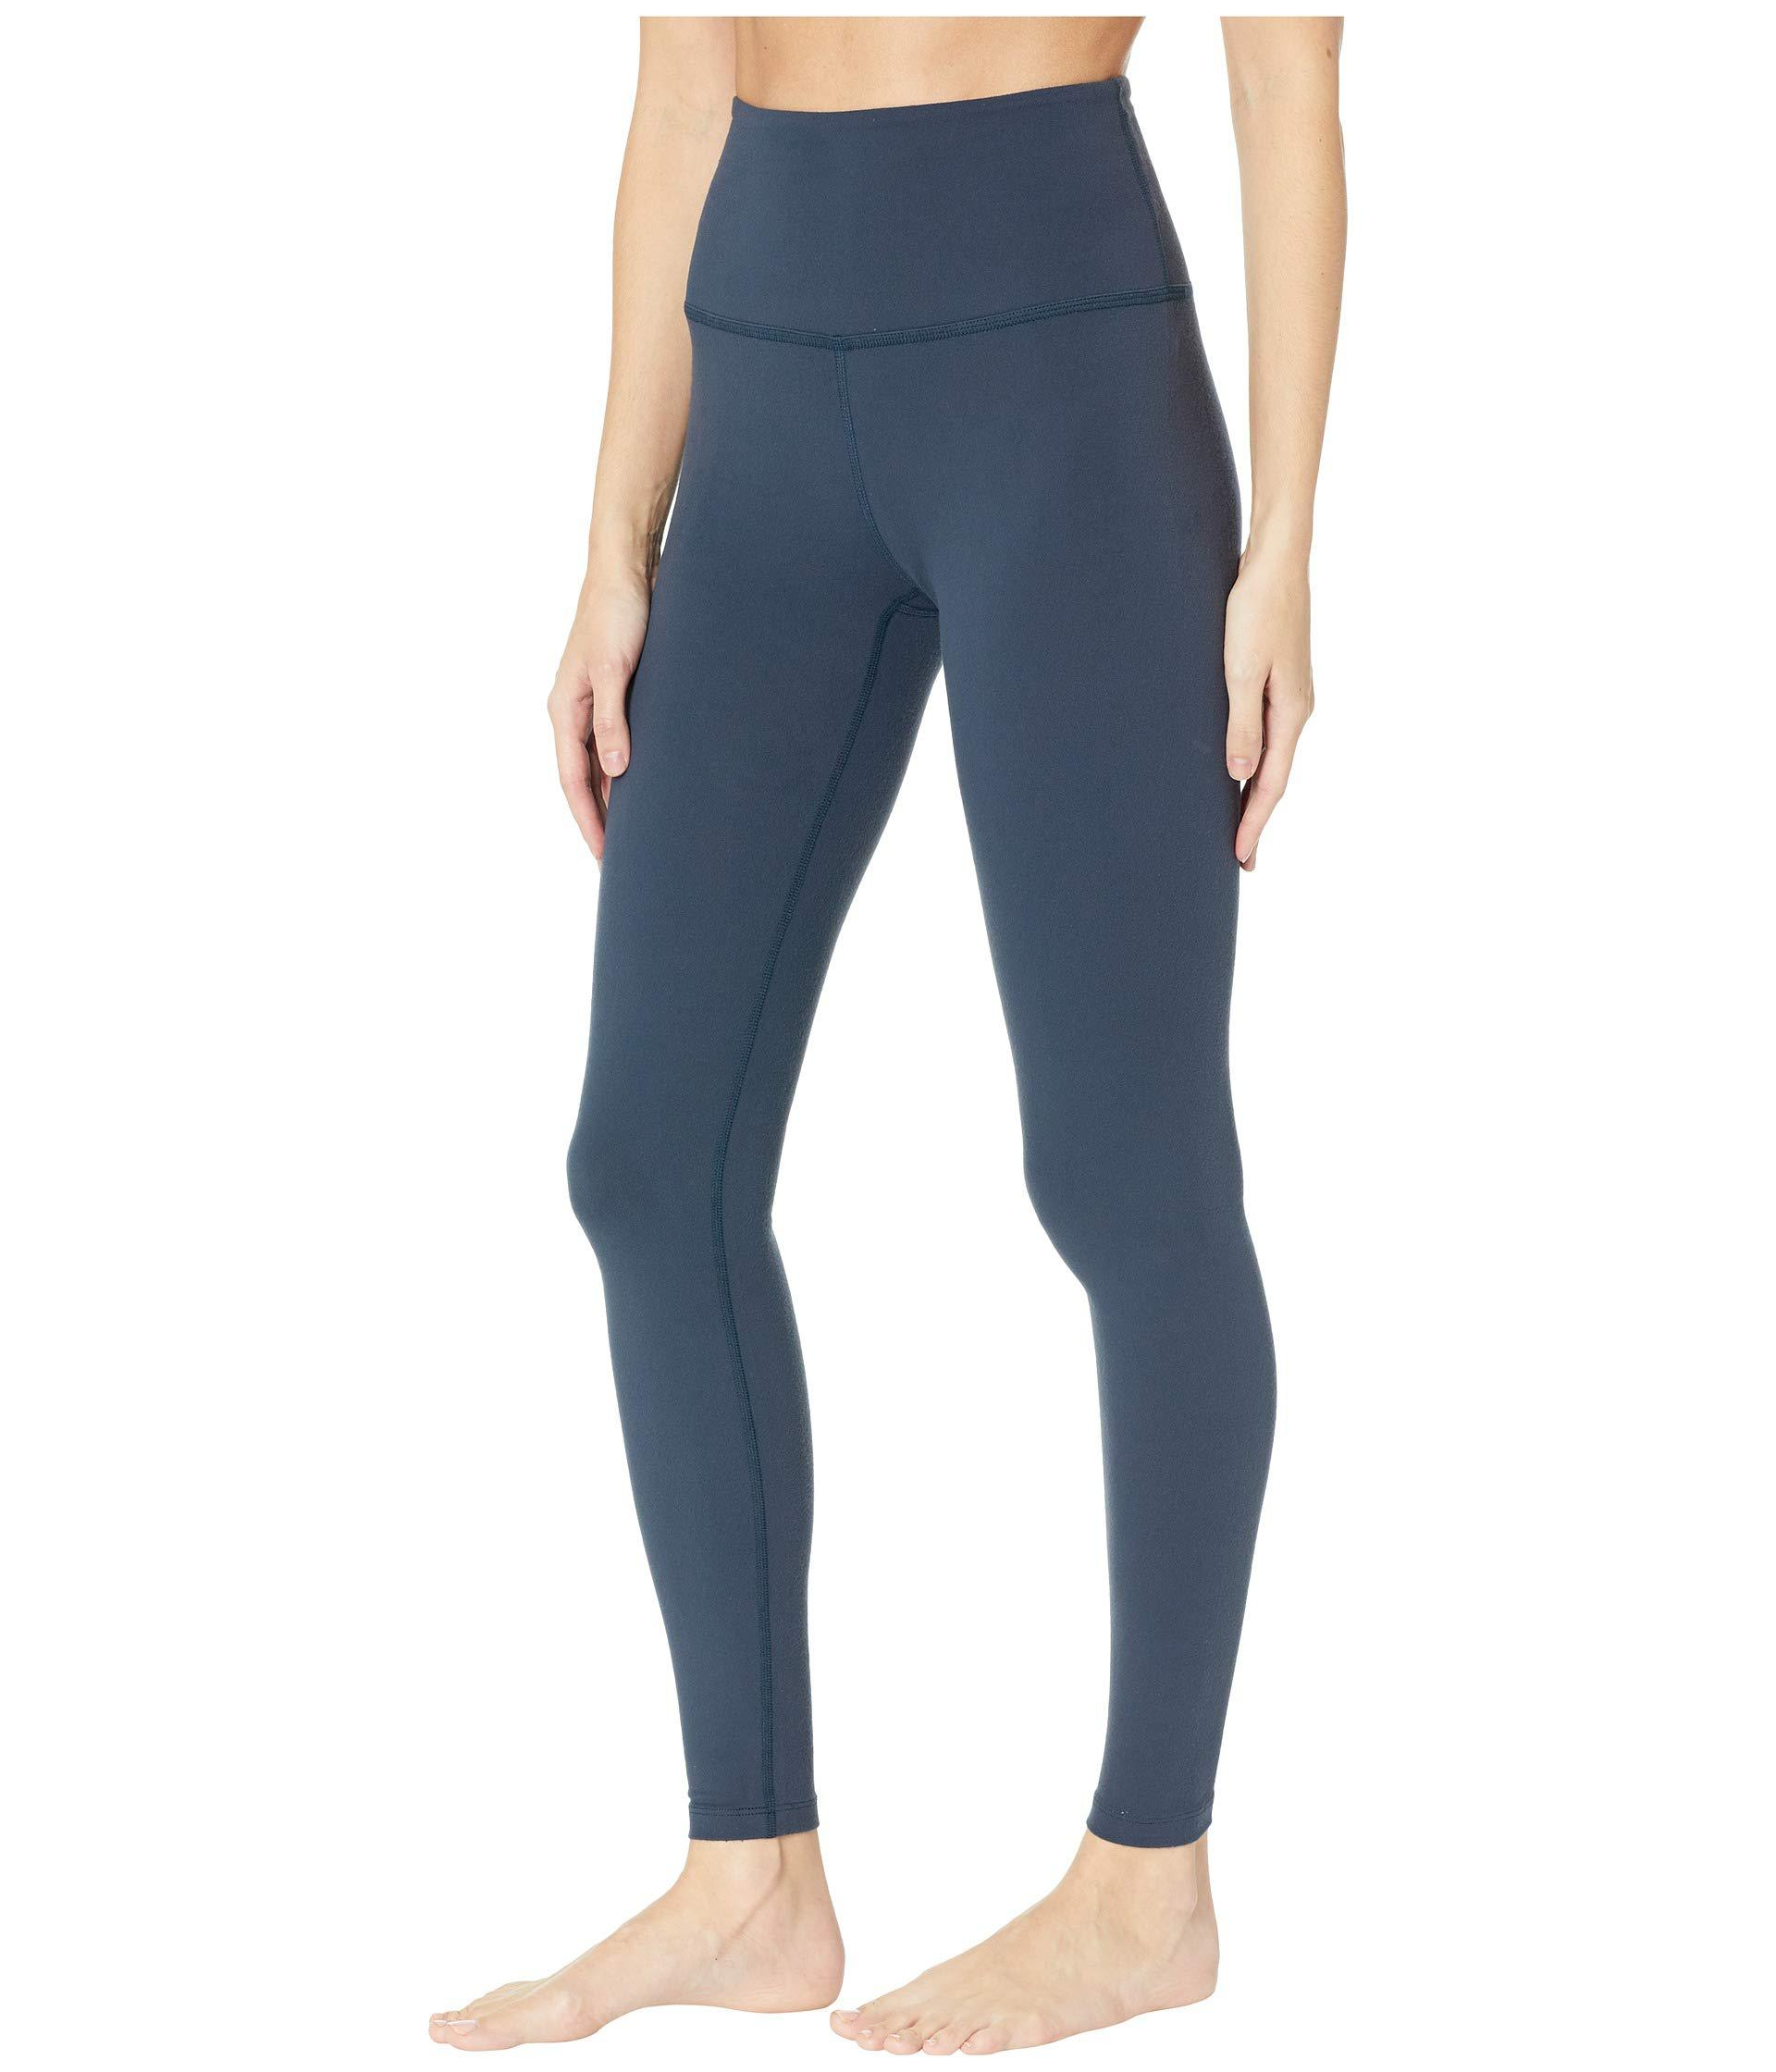 9ddf1198c45697 Lyst - Beyond Yoga High Waist Long Legging (black/navy) Women's Workout in  Blue